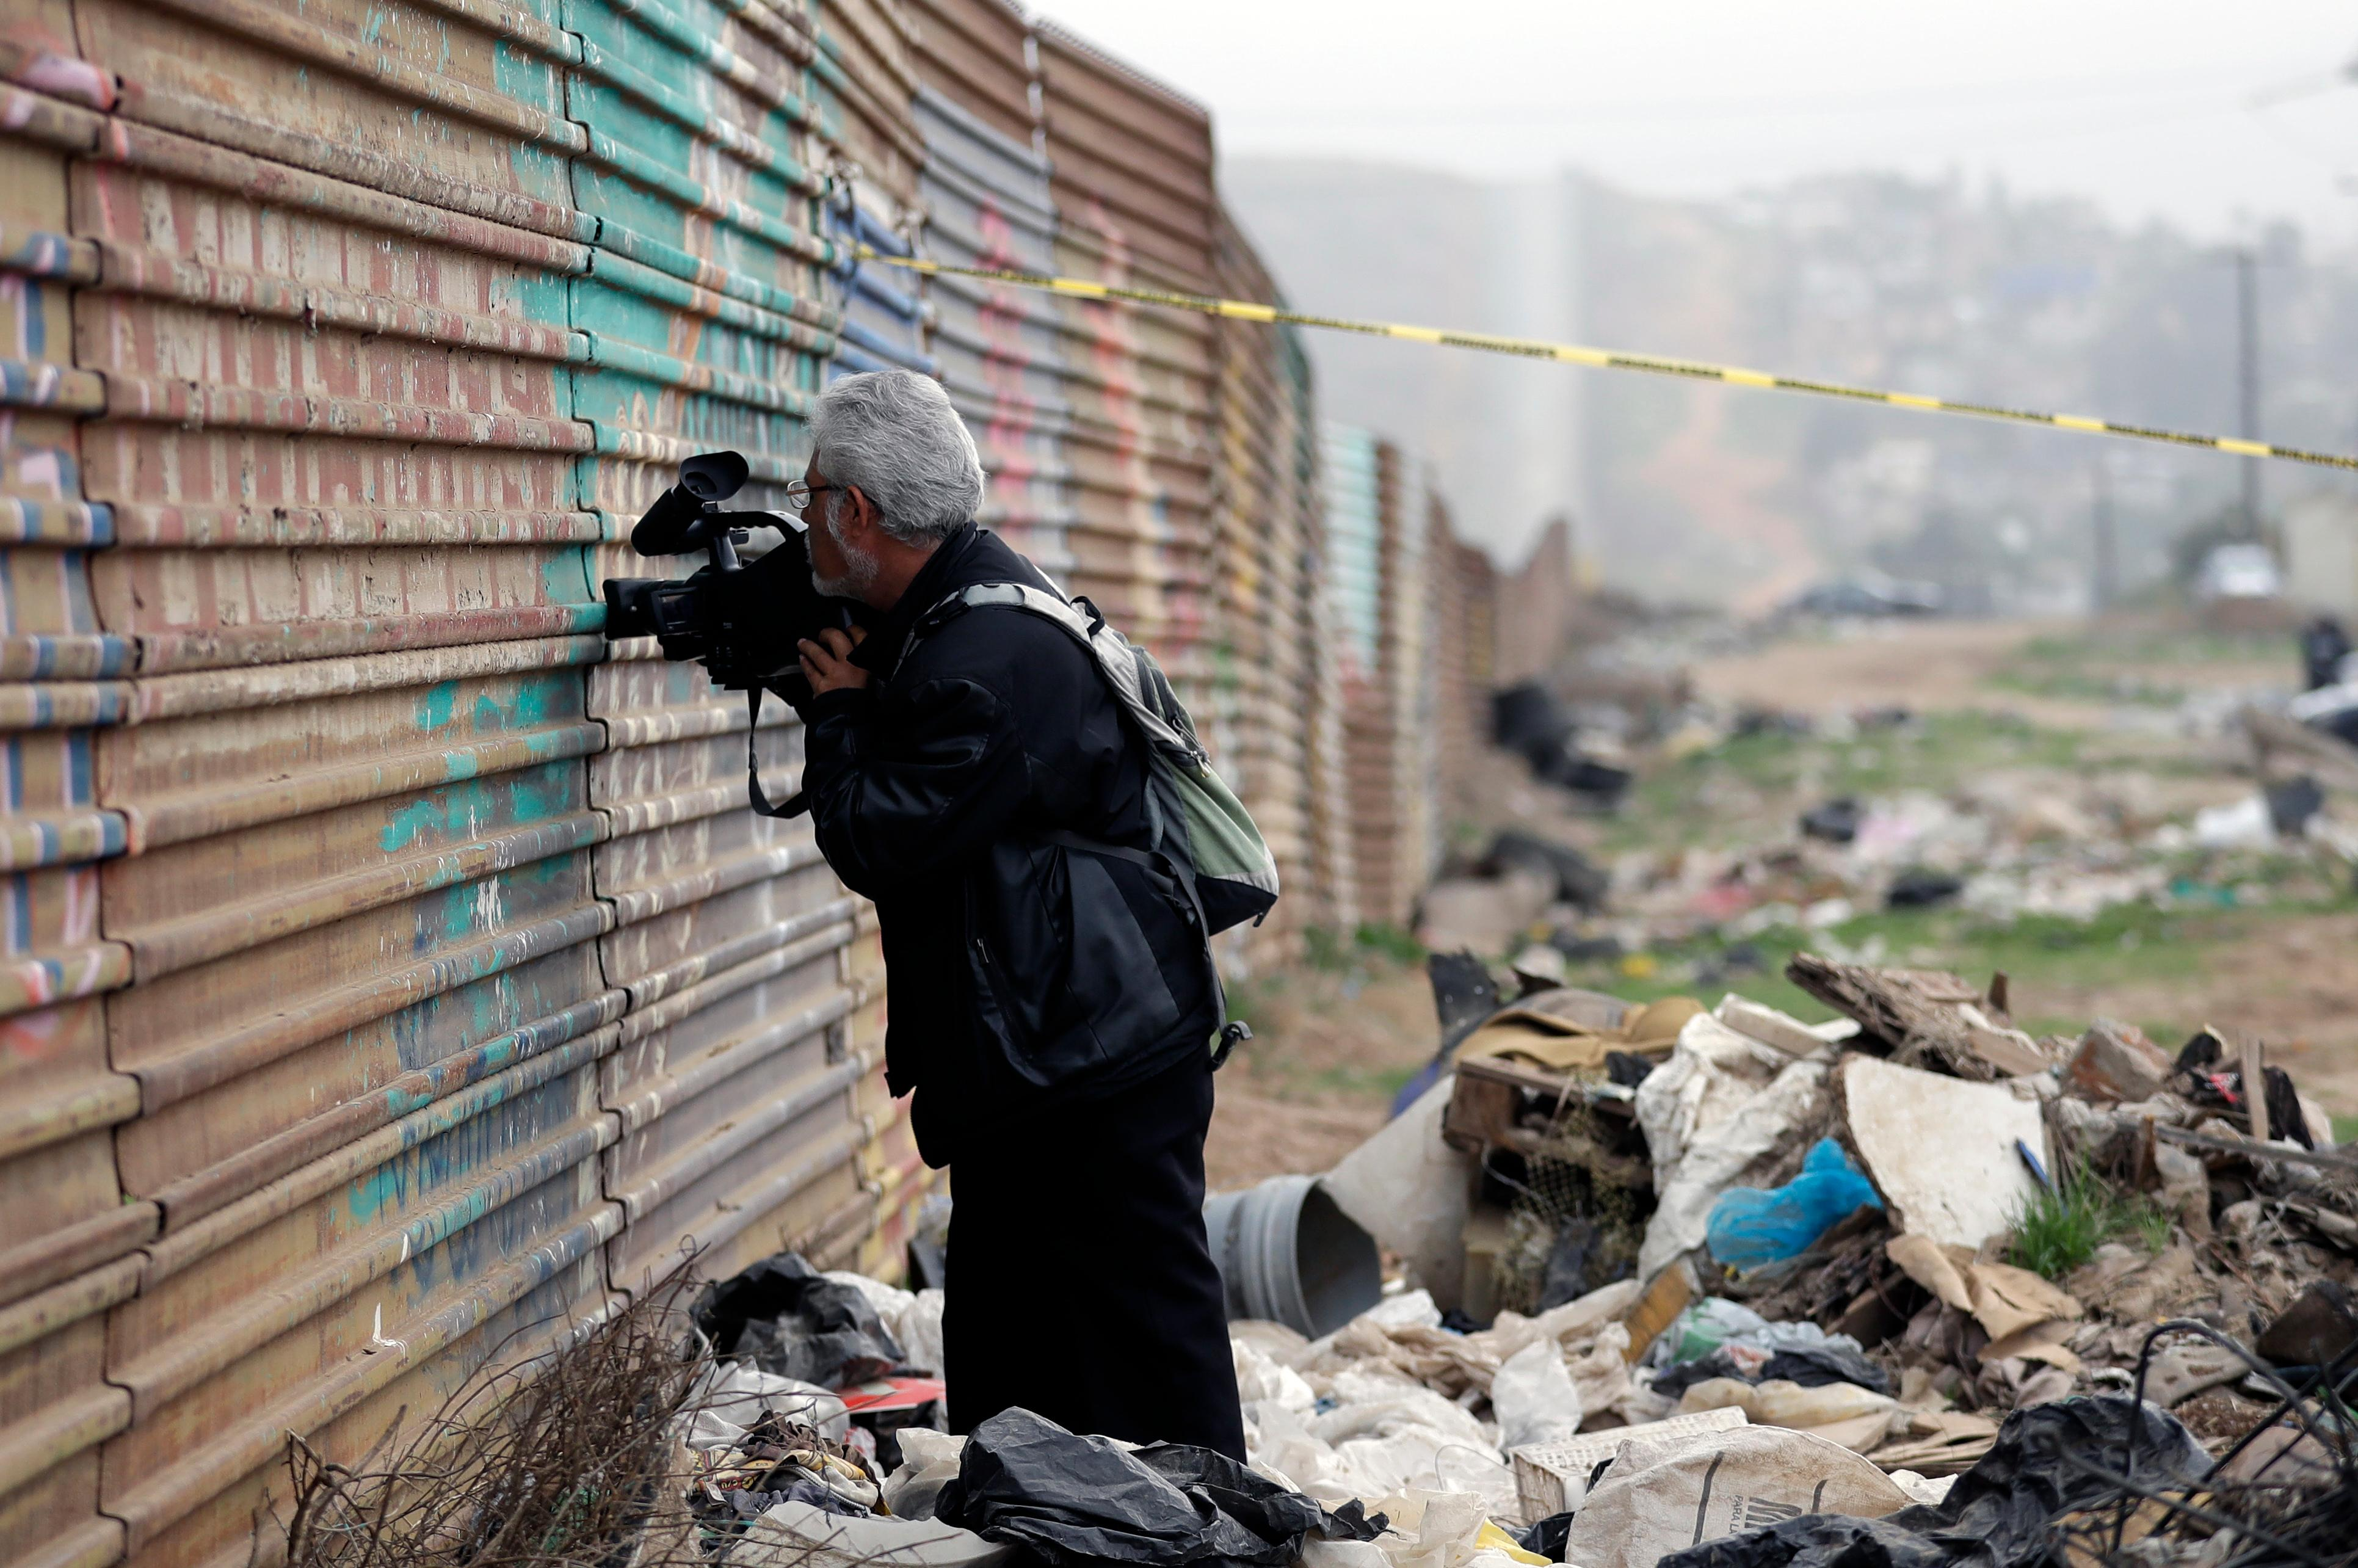 A journalist peers through a hole in the current border wall on the Mexico side of the border on Tuesday, March 13, 2018, in Tijuana, Mexico. President Trump is scheduled to visit the site of the border wall prototypes which are on the U.S. side of the wall. (AP Photo/Gregory Bull)